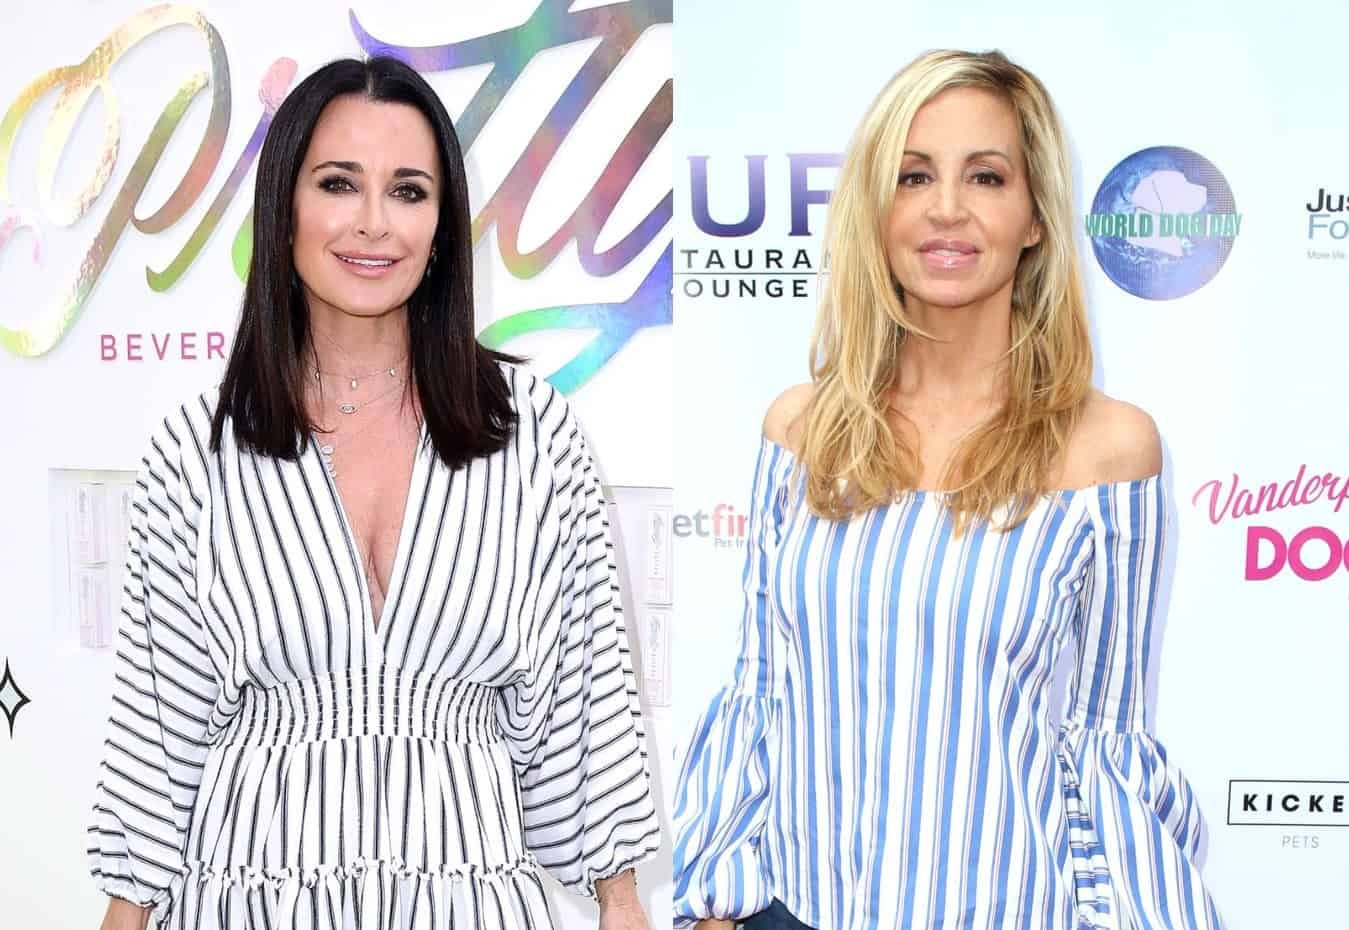 """RHOBH's Kyle Richards Confronts Camille Grammer About Mean Tweets, Accuses Her of """"Annihilating"""" the Cast and Explains Why She Can't Trust Her as Camille Blasts Co-Stars as """"Witches"""" for Attacking Her During Season 9 Reunion"""